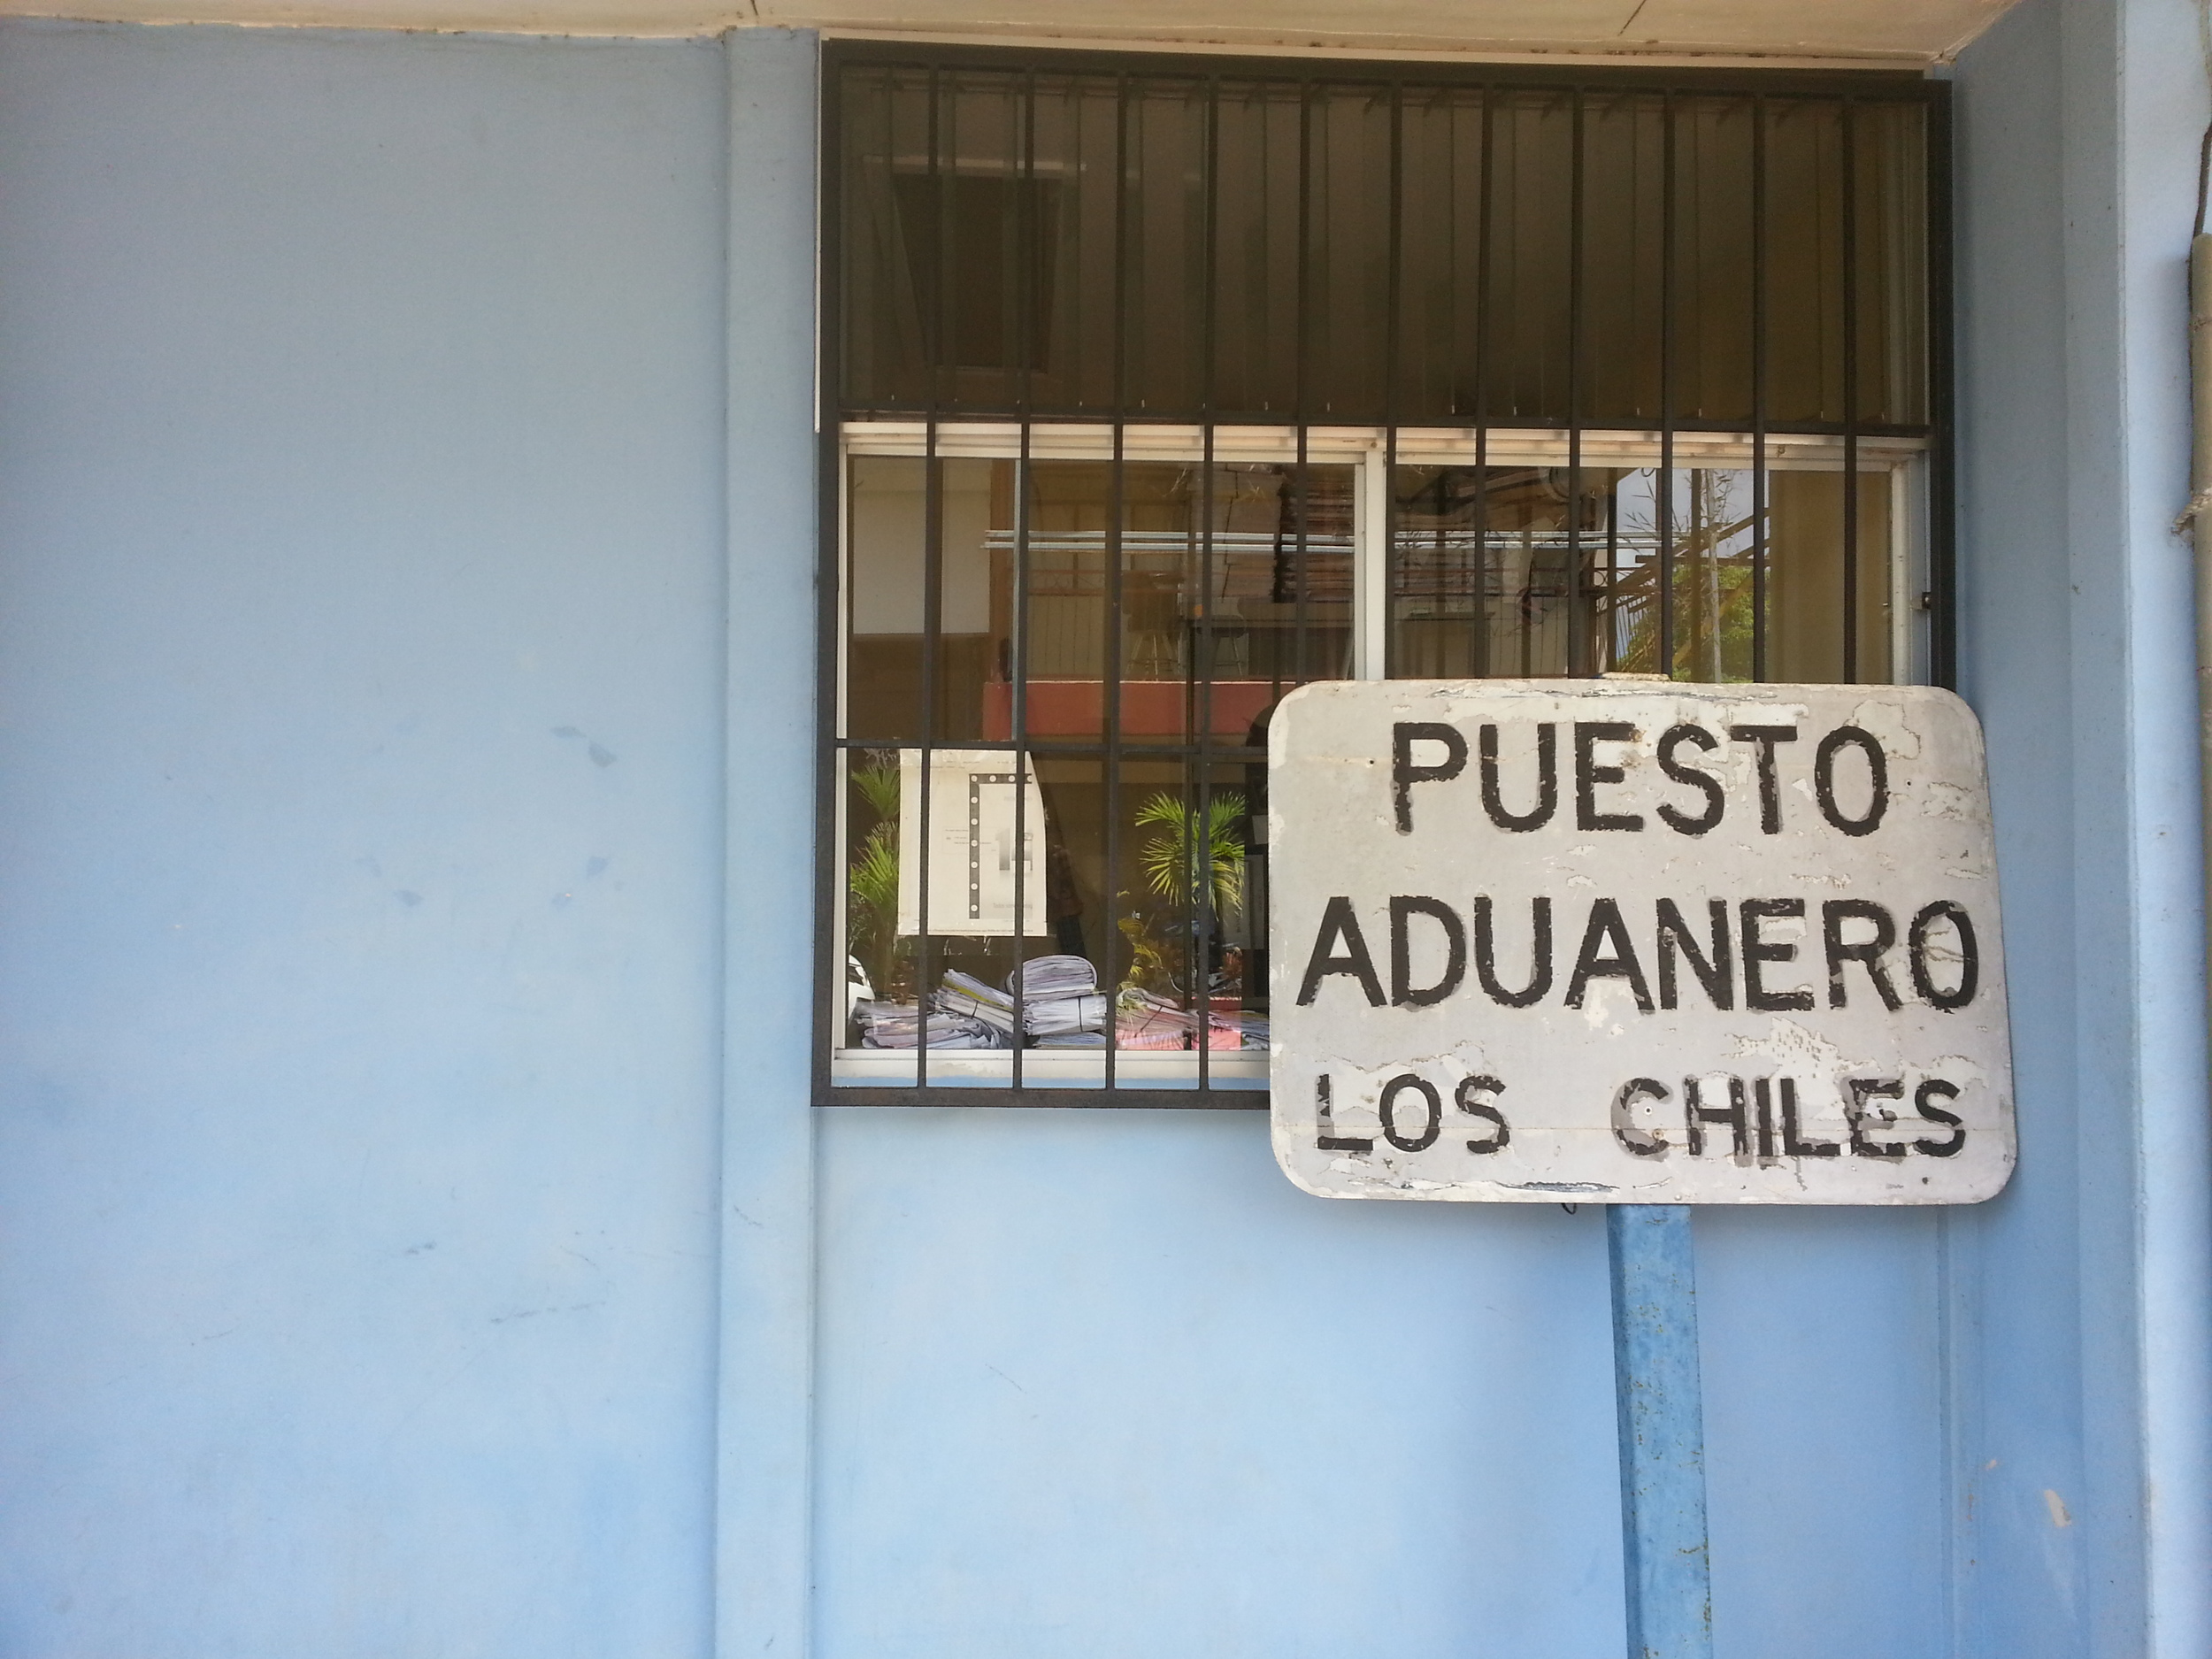 The Aduana office in Los Chiles is heavily guarded...wonder why.